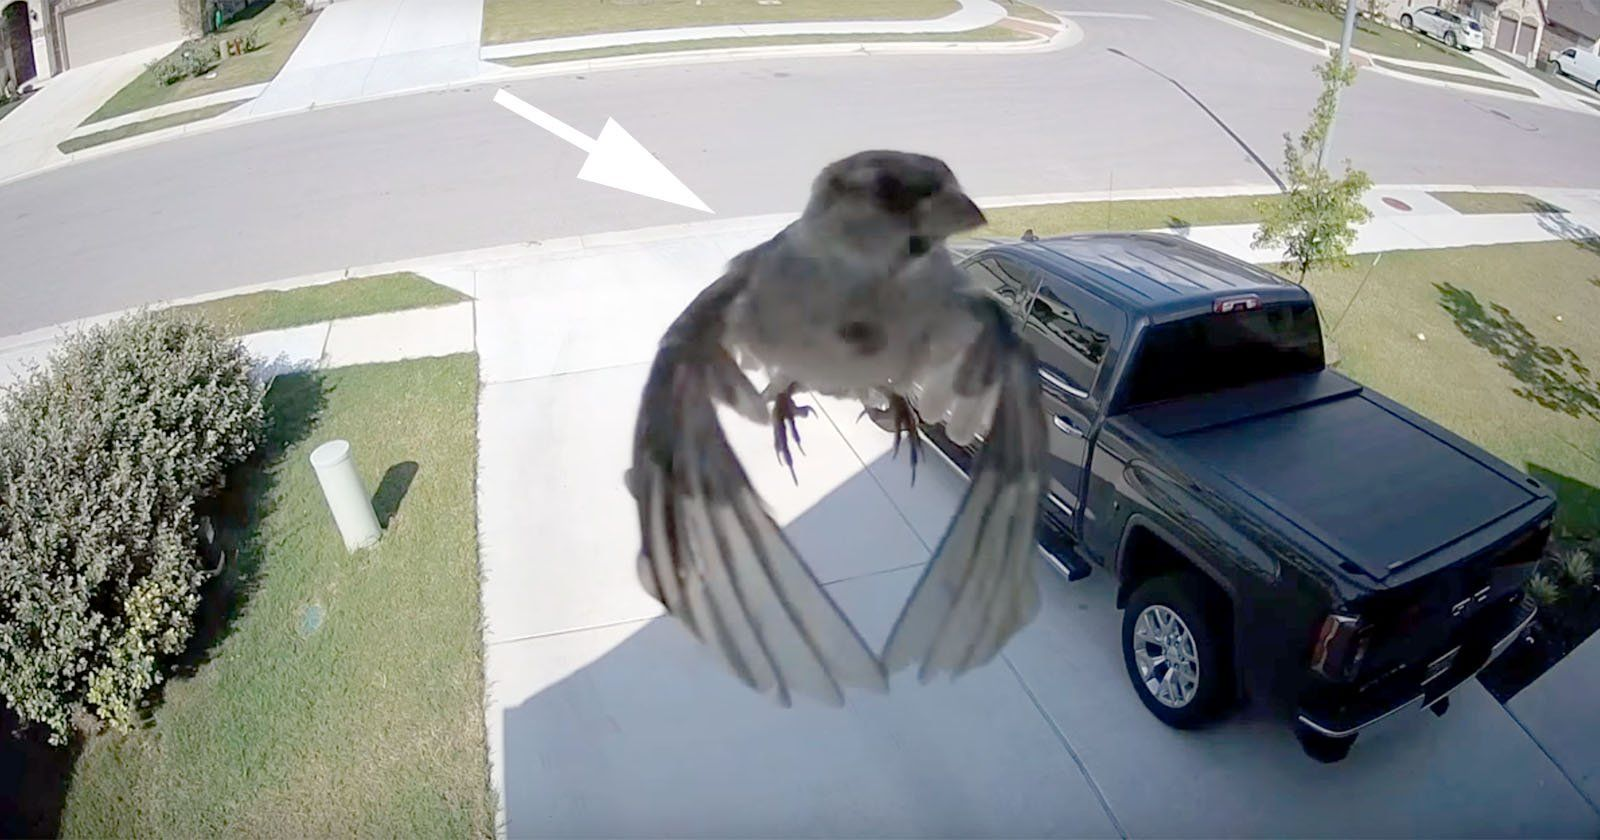 When A Cameras Frame Rate Is Synced To A Birds Wings Camera - Syncing a videos frame rate with a birds wings does something amazing